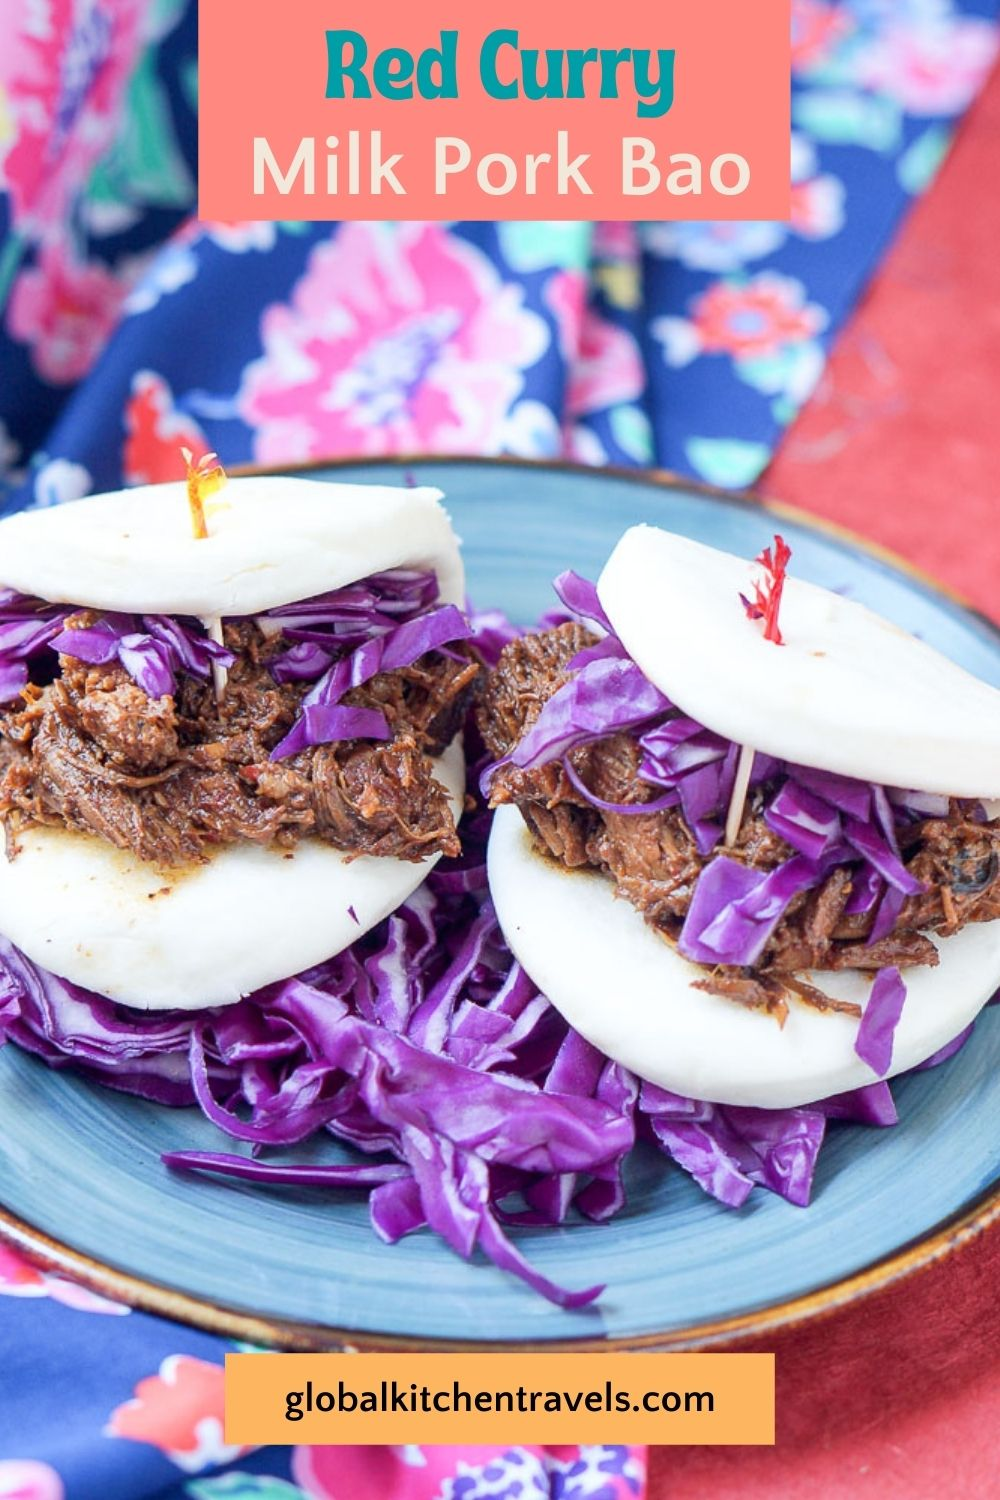 2 milk pork bao sandiwches on a plate with red cabbage